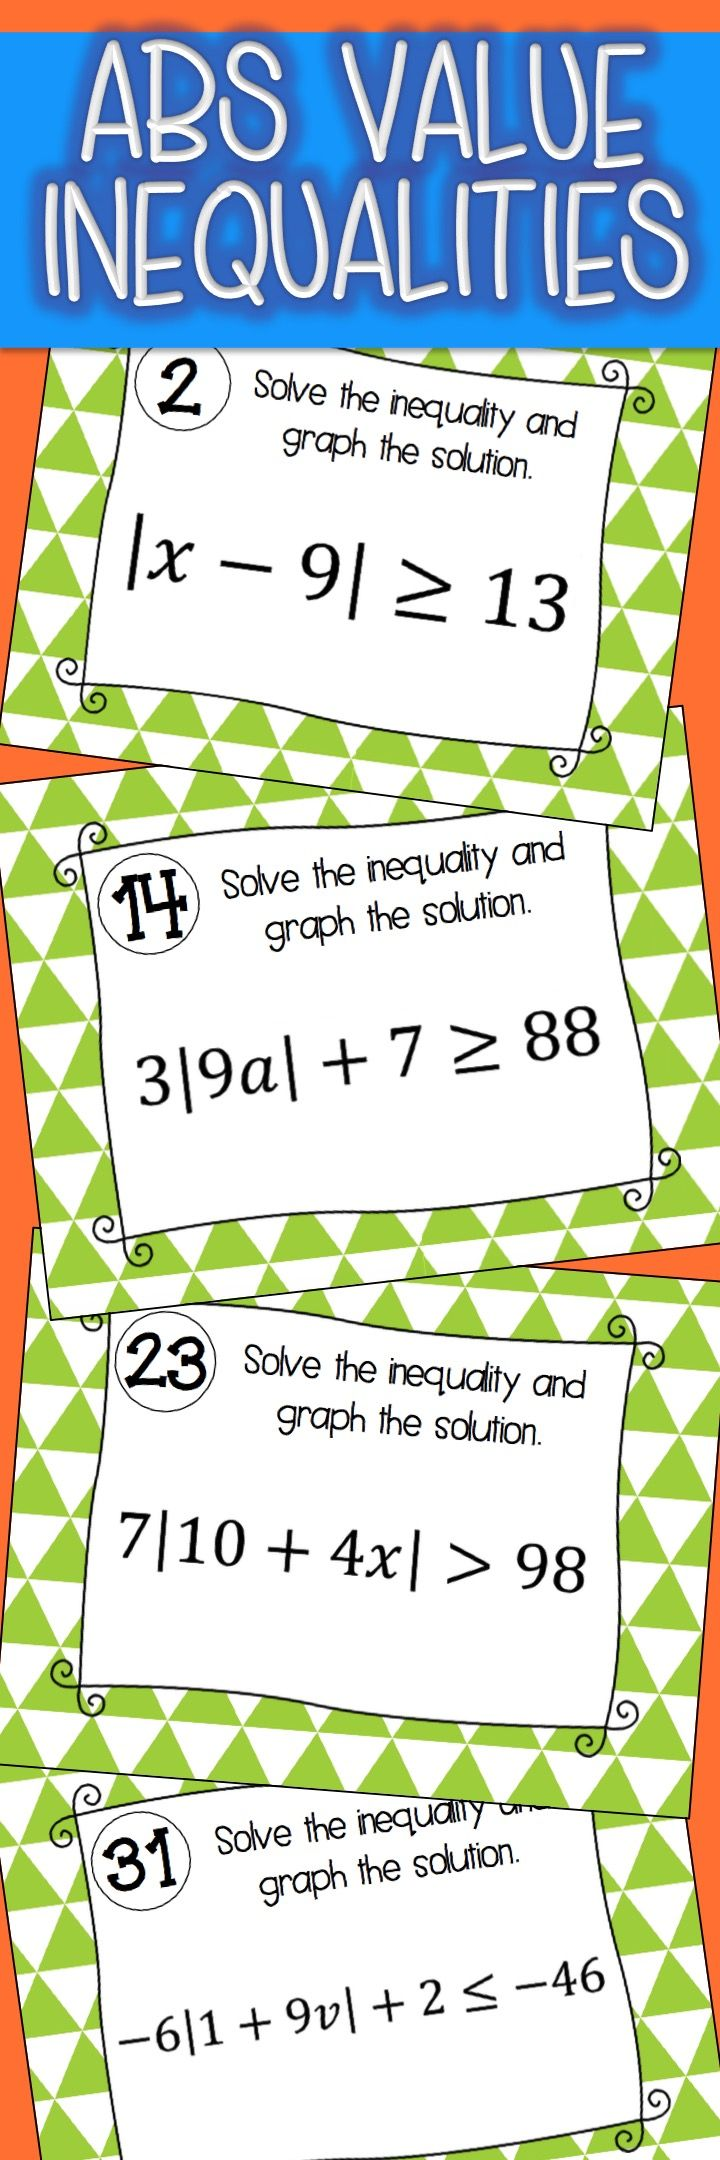 Absolute Value Inequalities Activity Task Cards Absolute Value Inequalities Inequalities Activities Task Cards